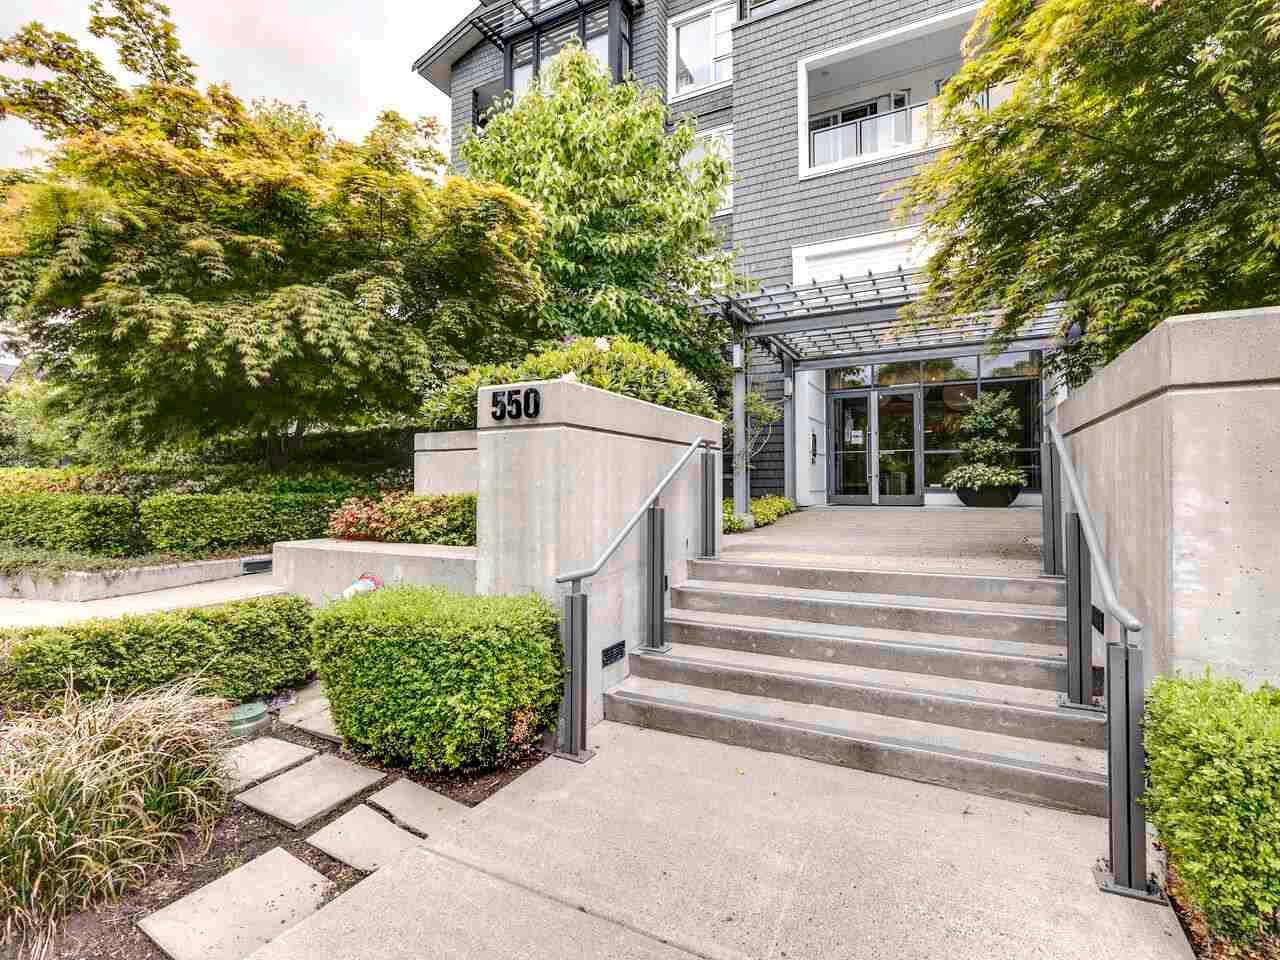 Main Photo: 1 Bedroom and Den Suite For Sale at Fremont Green 317 550 Seaborne Place Port Coquitlam BC V3B 0L3